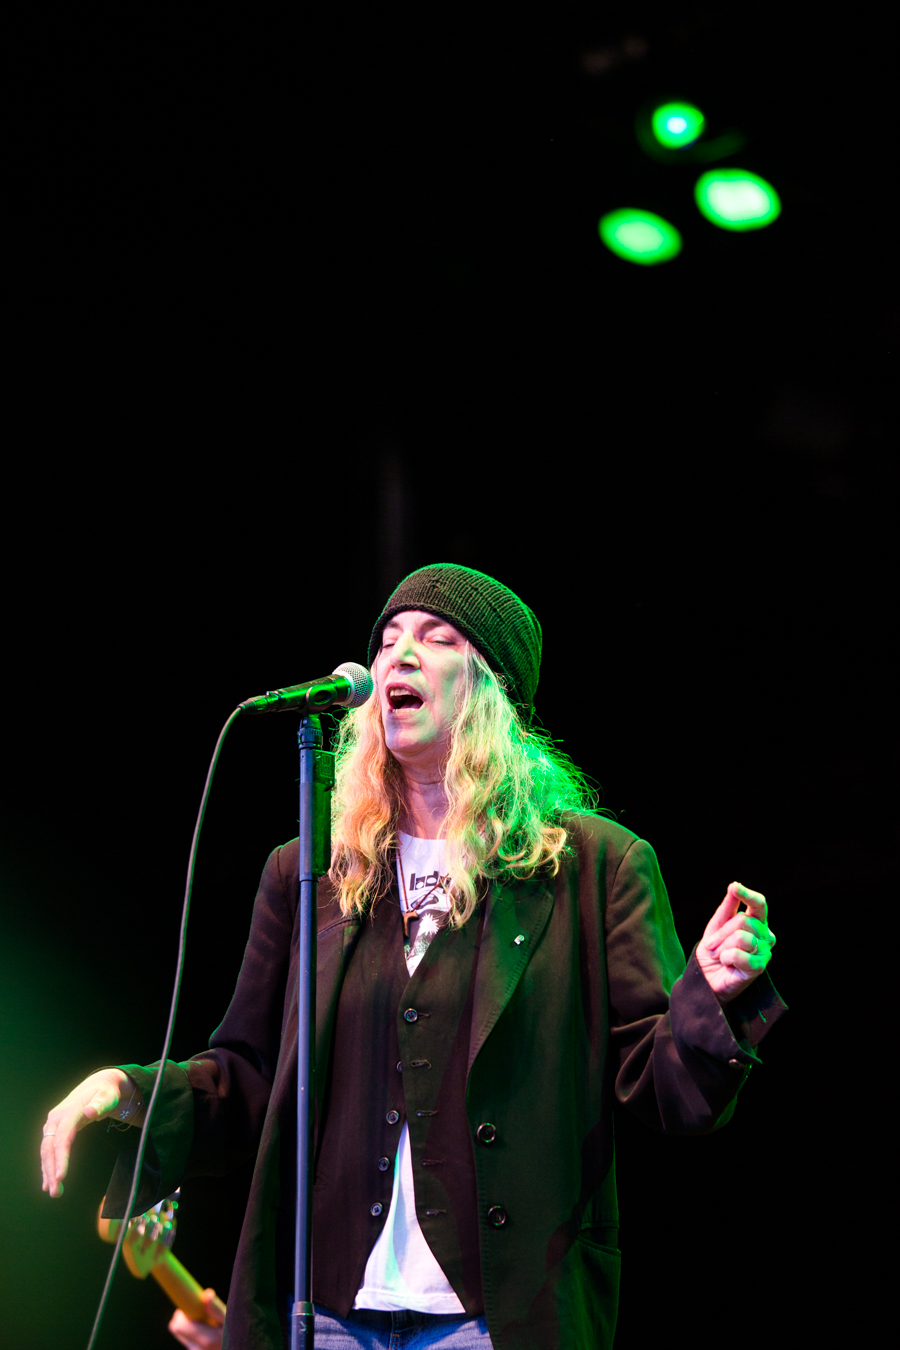 140730-Patti-Smith-Foto-Rebecca-Carlgren-livefoto-nu-photo--13